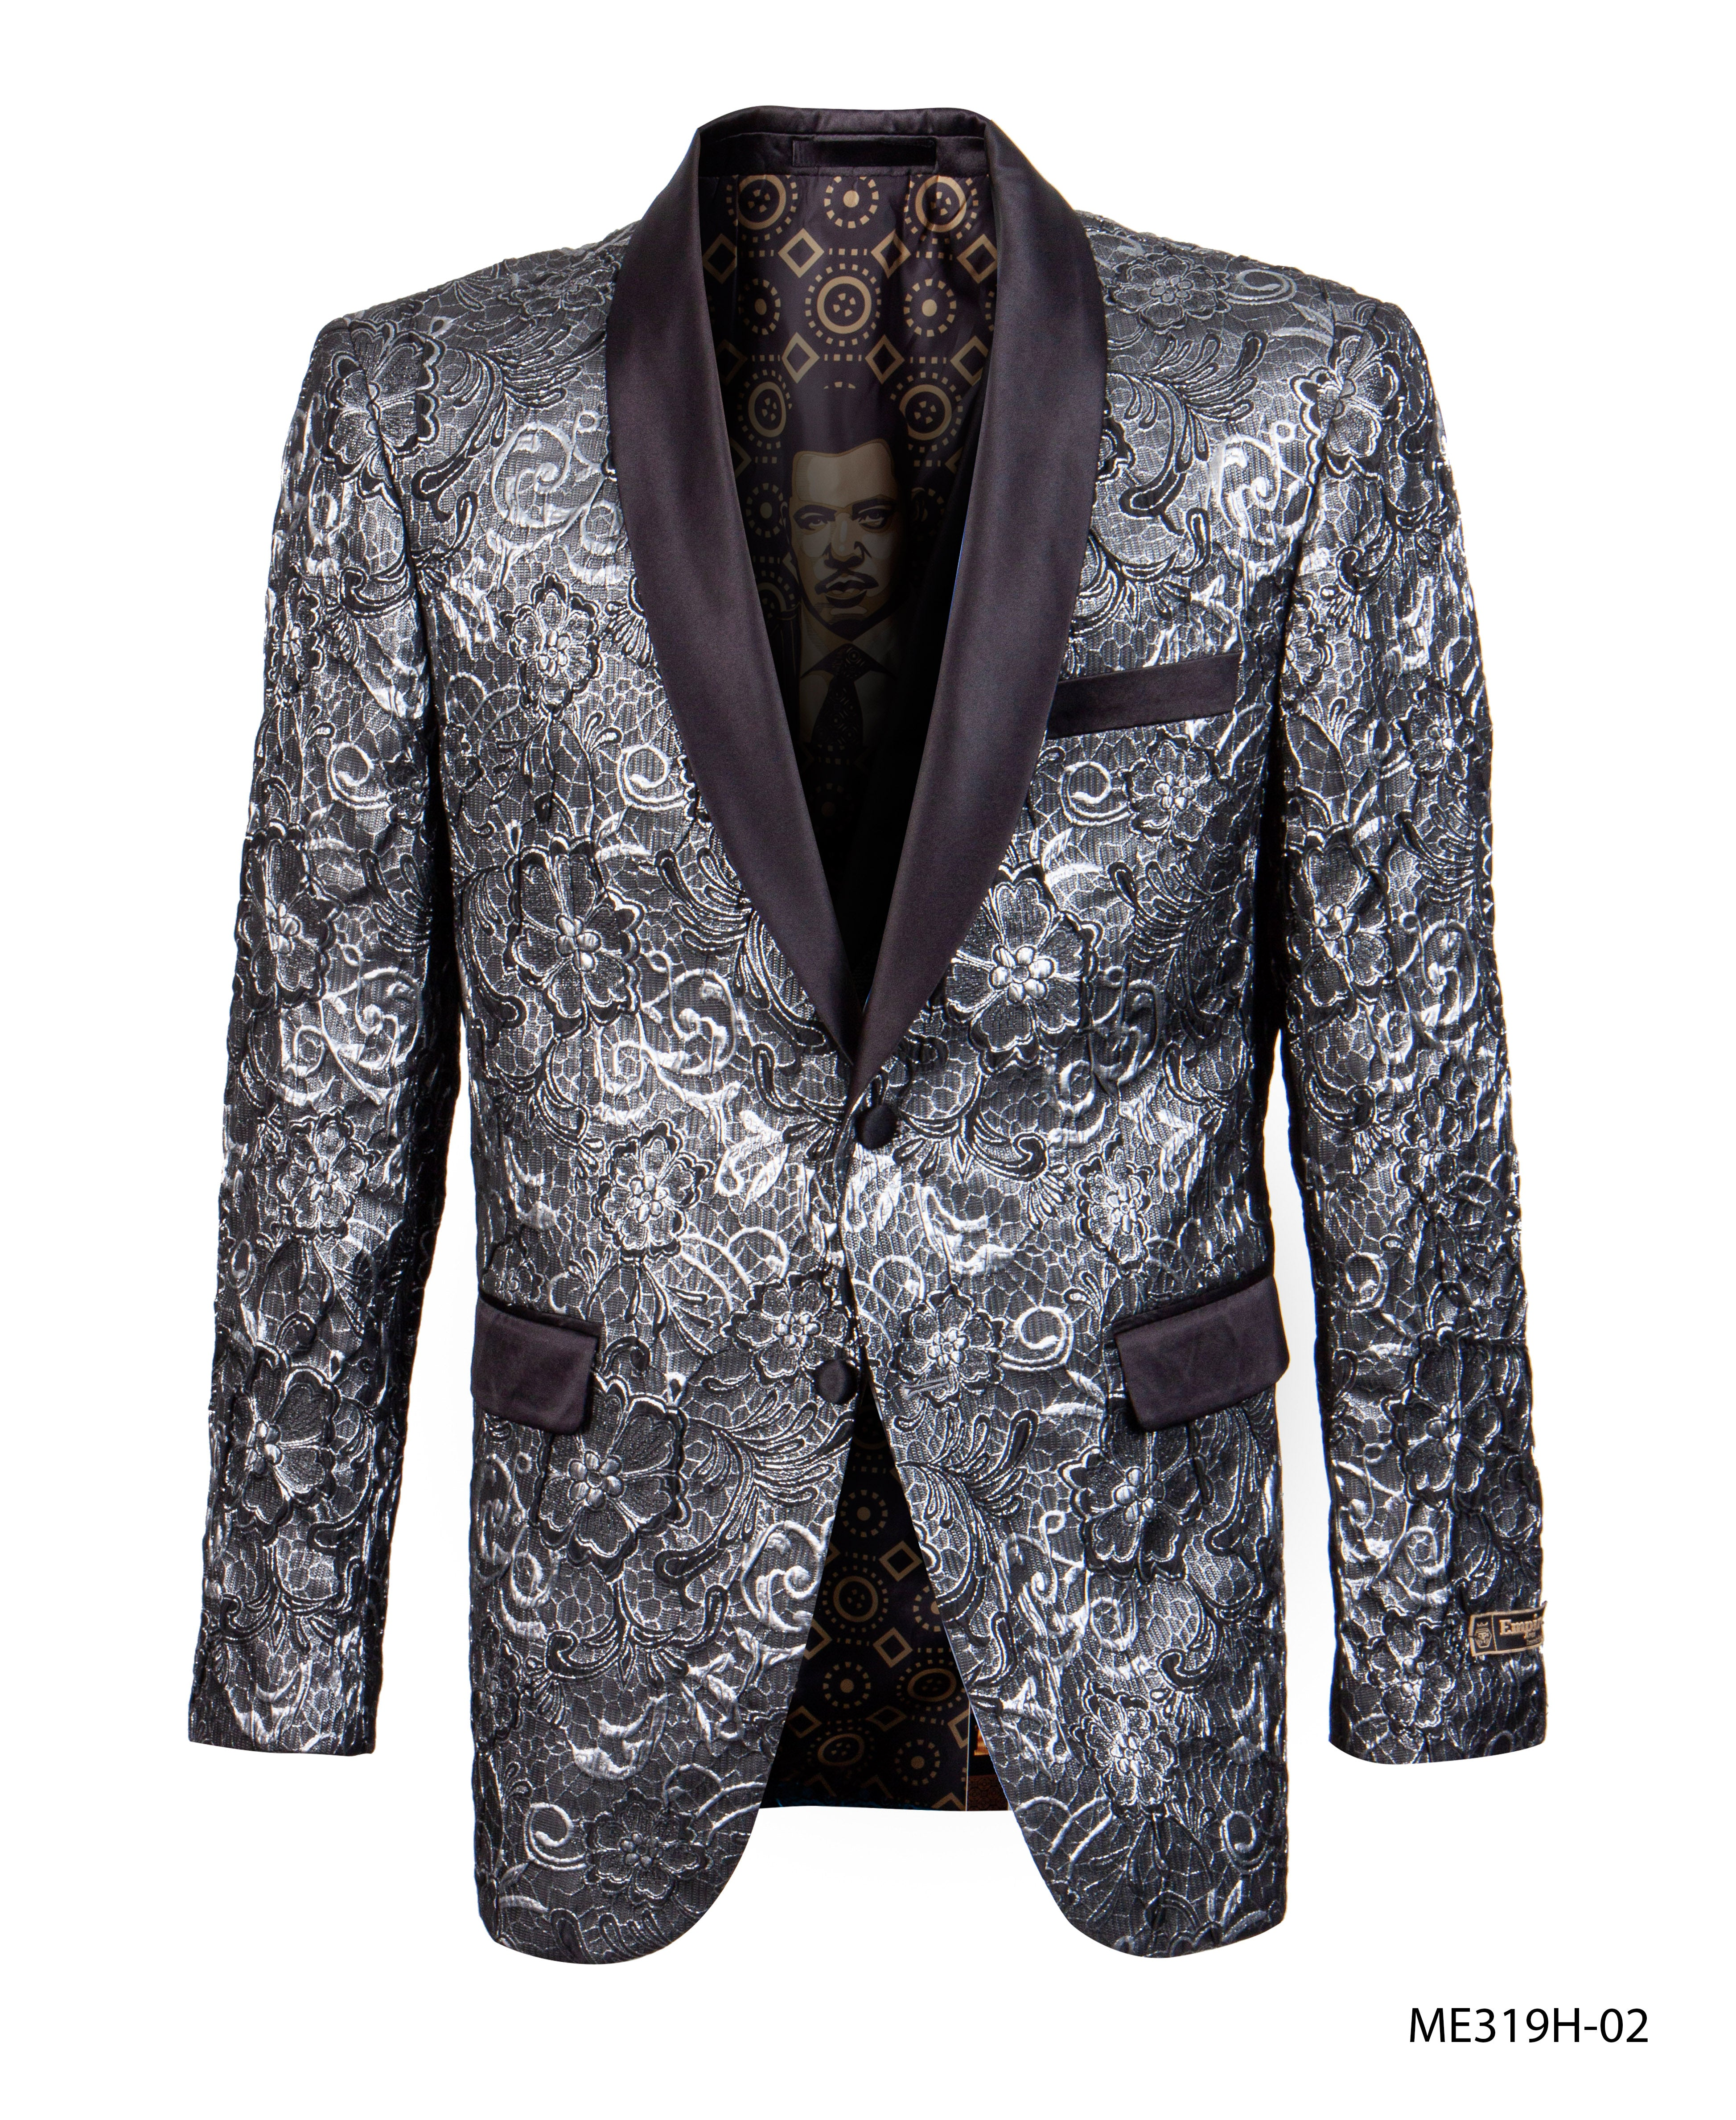 Black/Silver Empire Show Blazers Formal Dinner Suit Jackets For Men ME319H-02